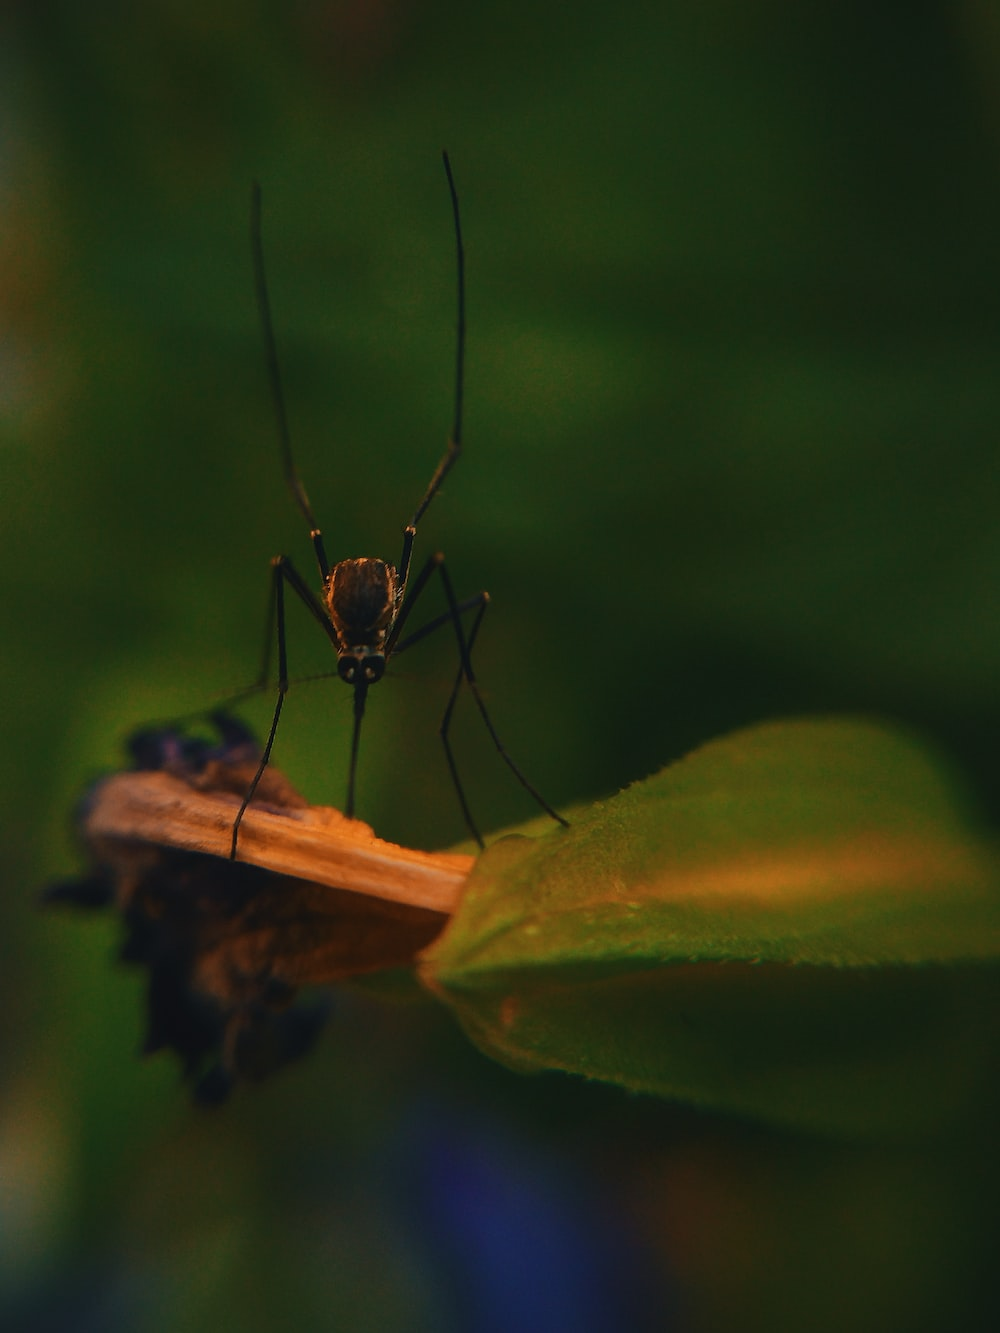 macro photography of mosquito